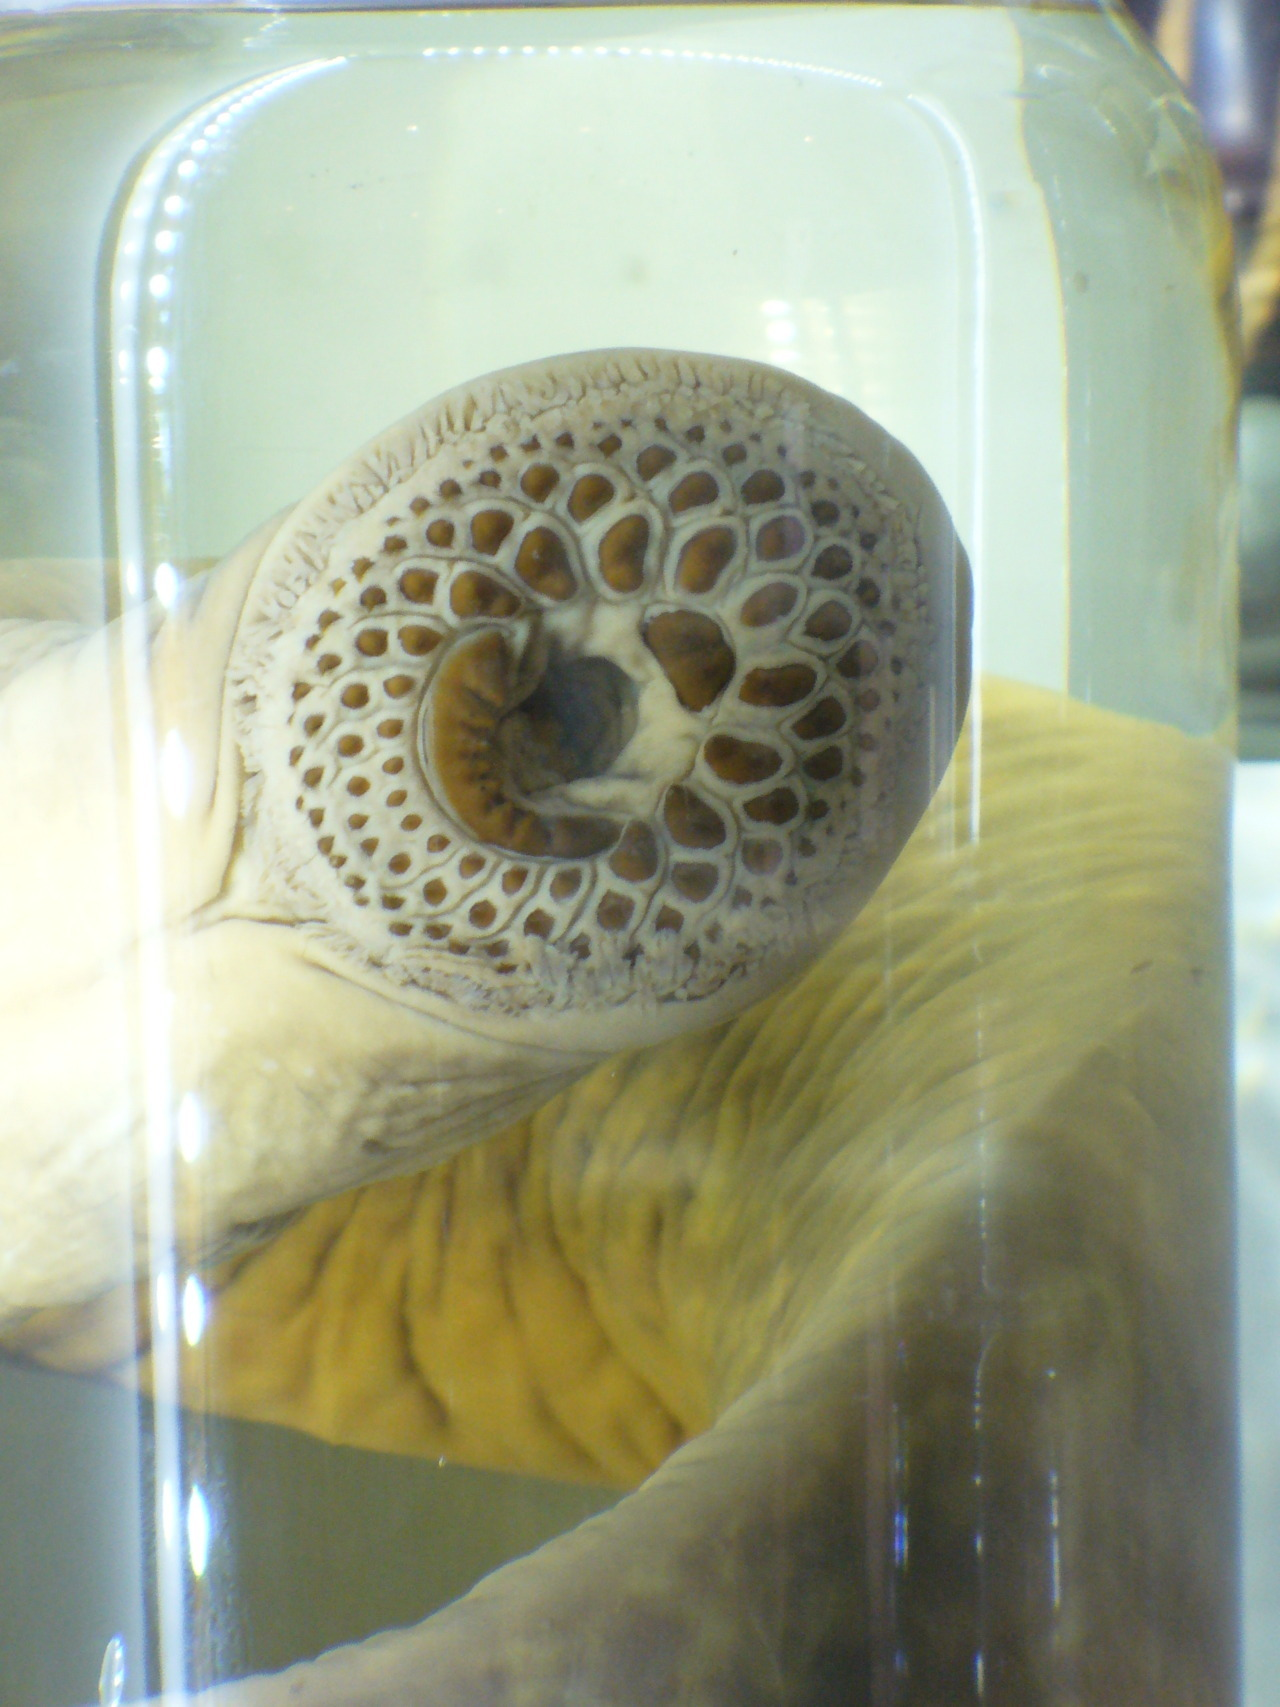 castalasta:  Lamprey in a Jar at The Academy of Natural Sciences. Photo taken by me.